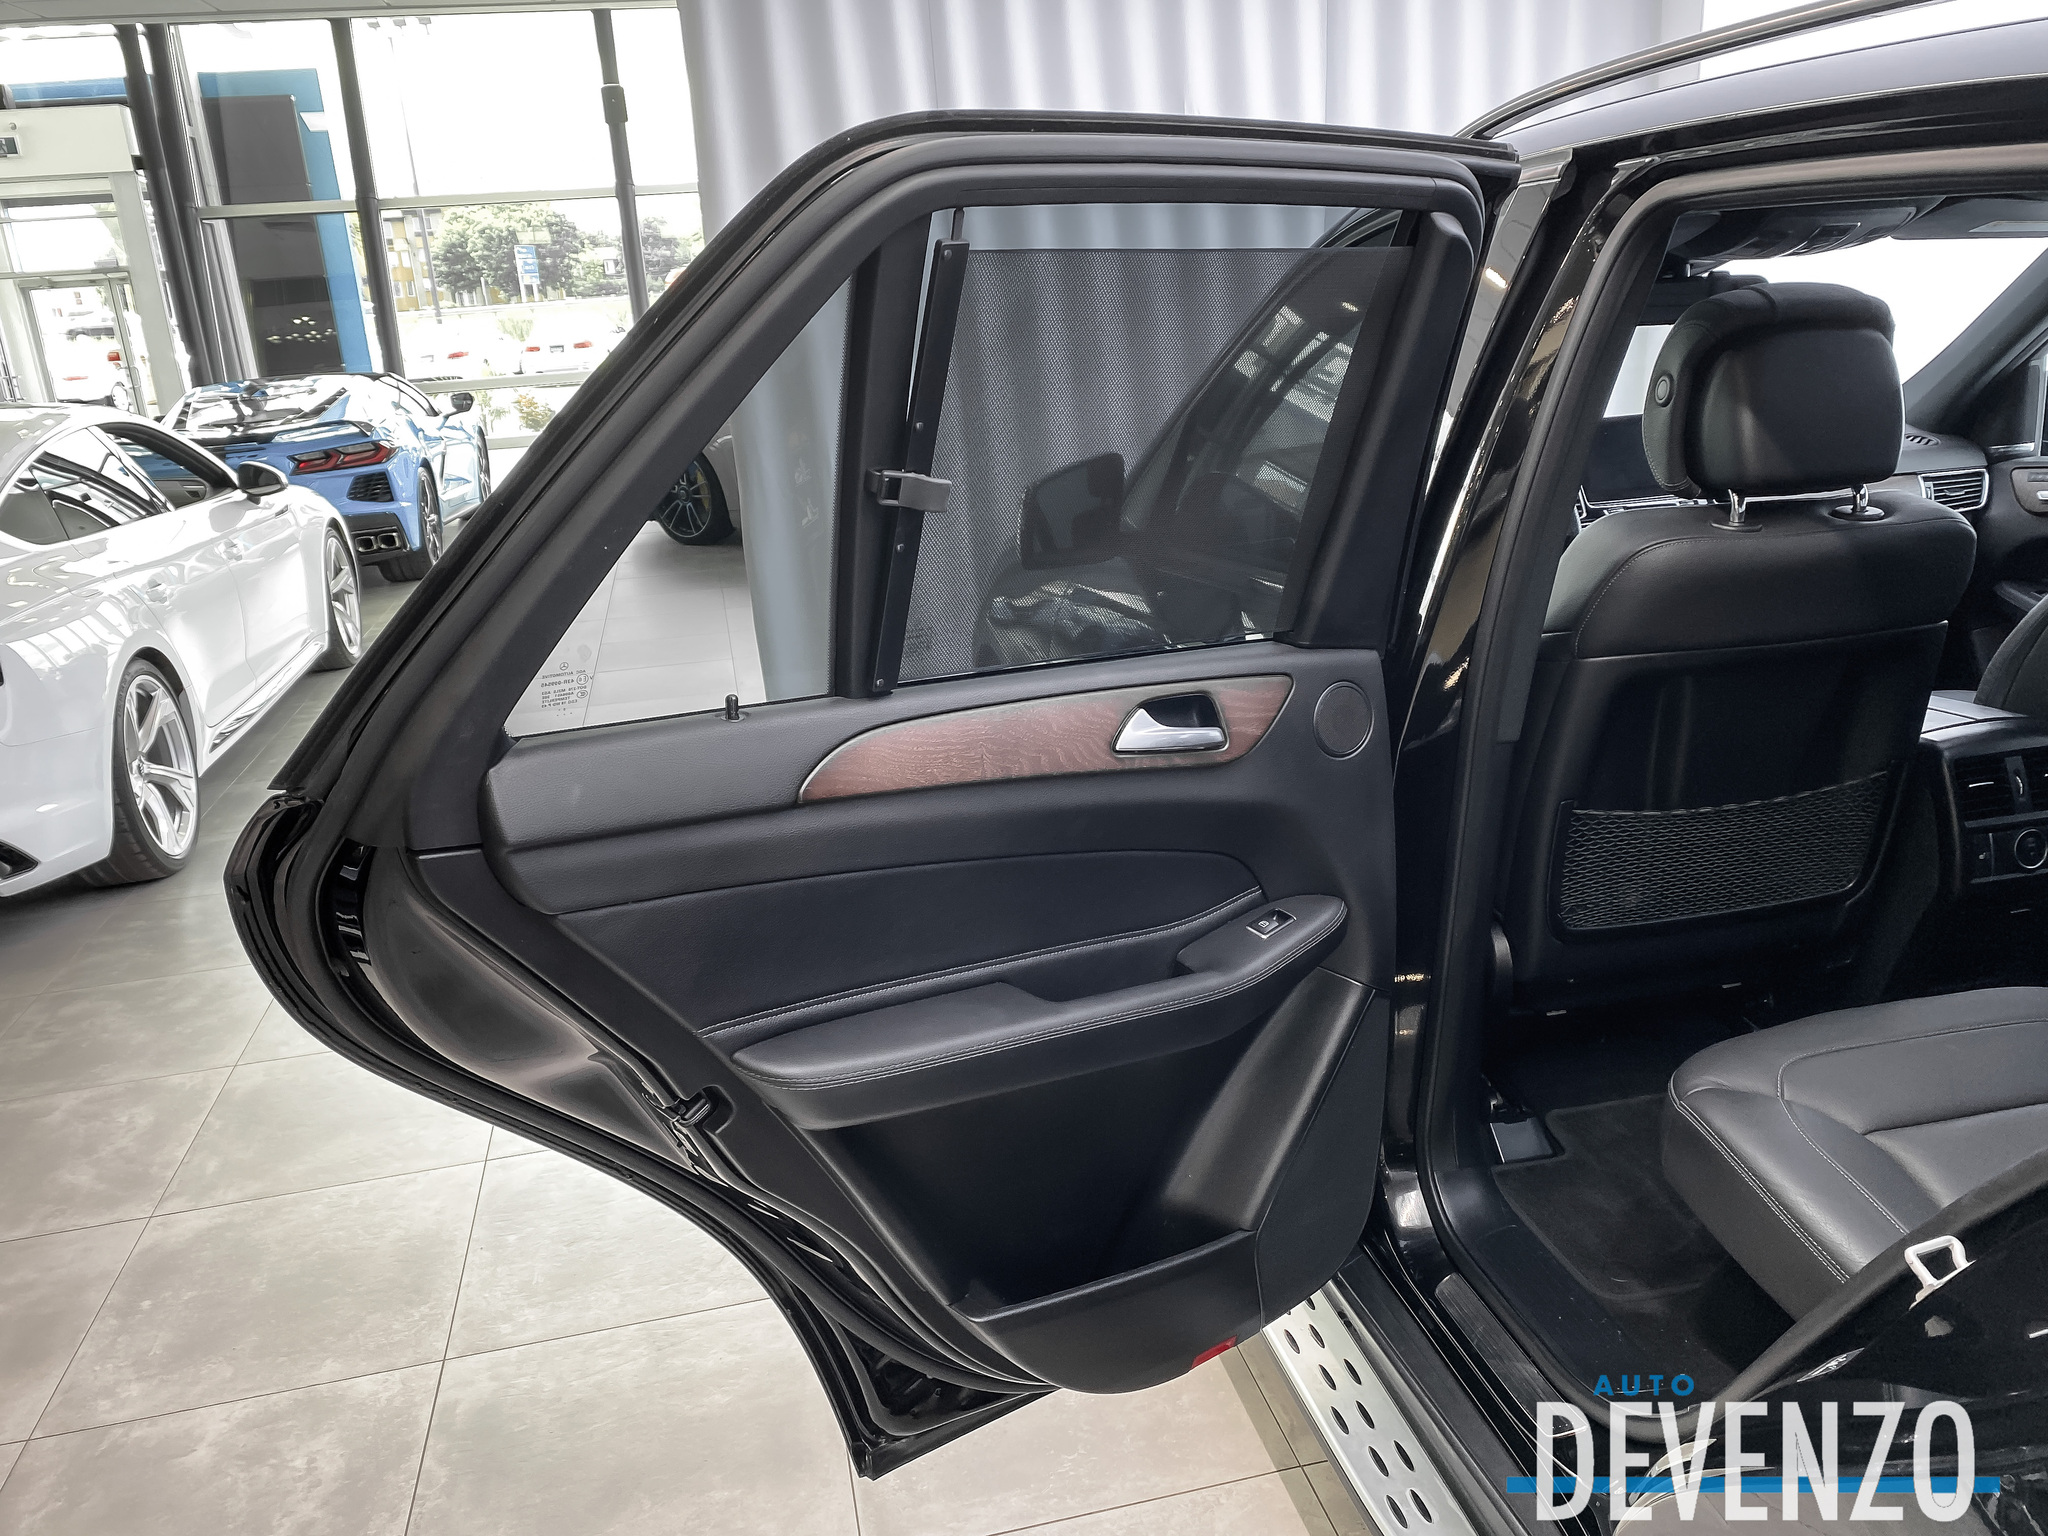 2017 Mercedes-Benz GLE-Class 4MATIC GLE550e Electric Hybrid complet